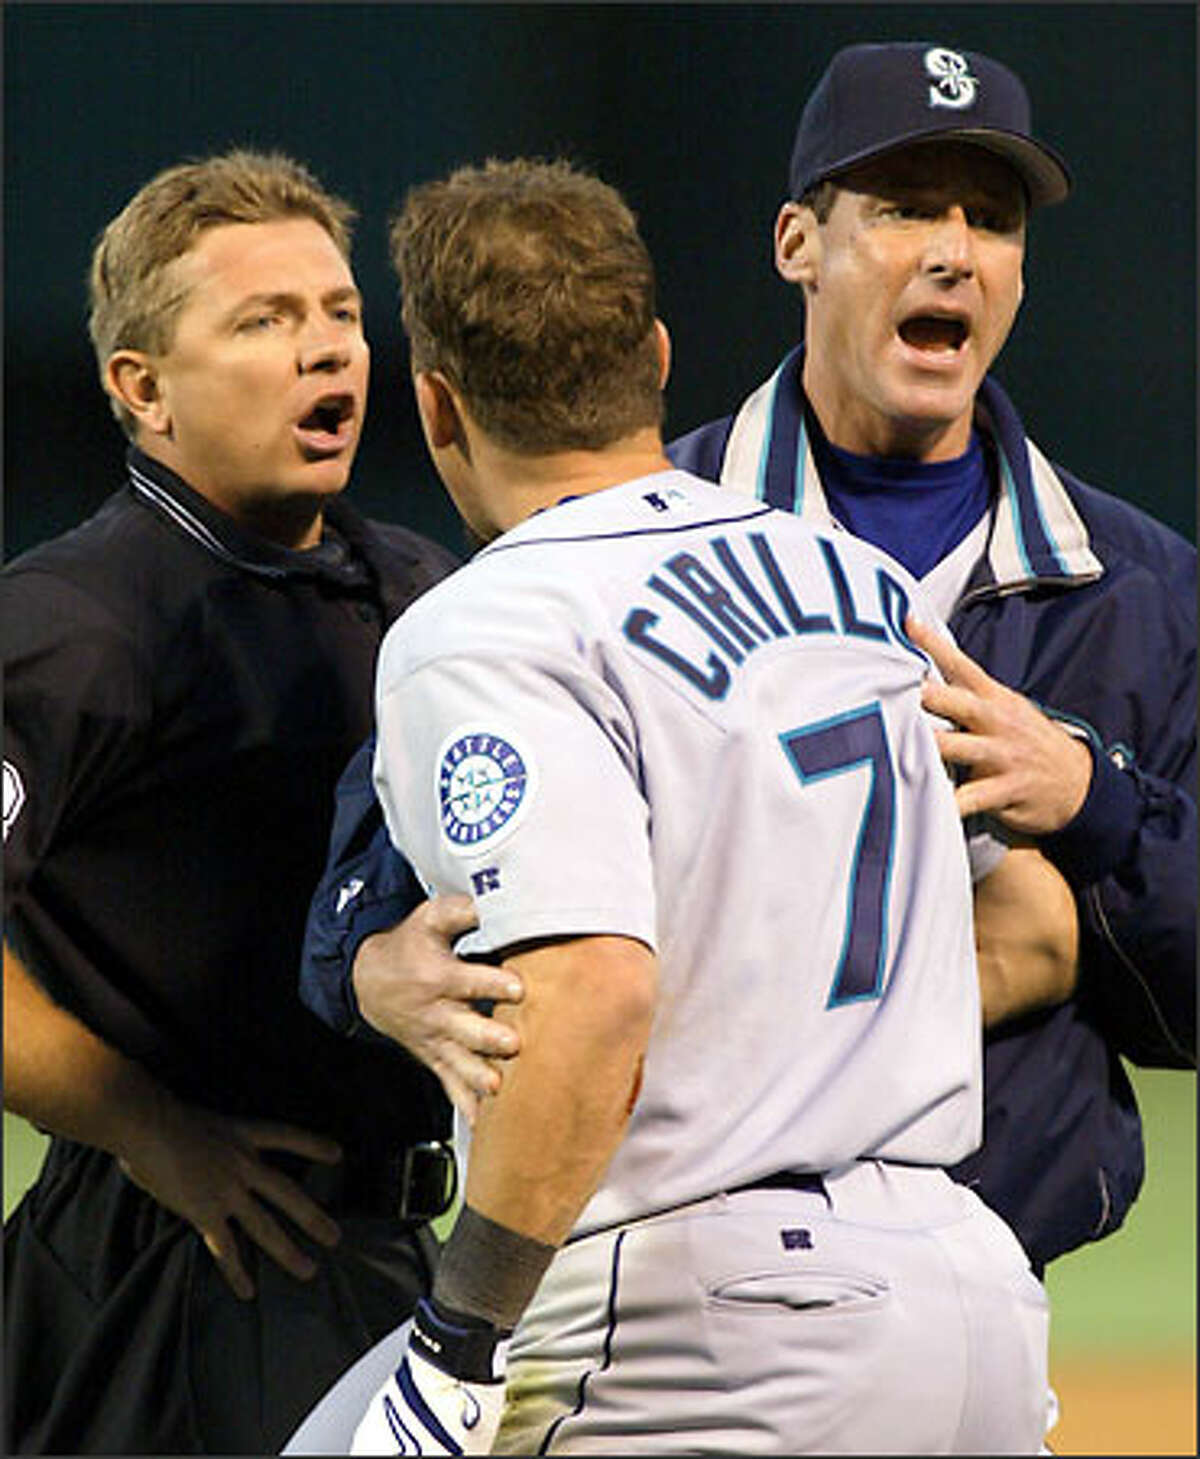 Manager Bob Melvin fails to prevent Jeff Cirillo from being ejected by home plate umpire Greg Gibson.